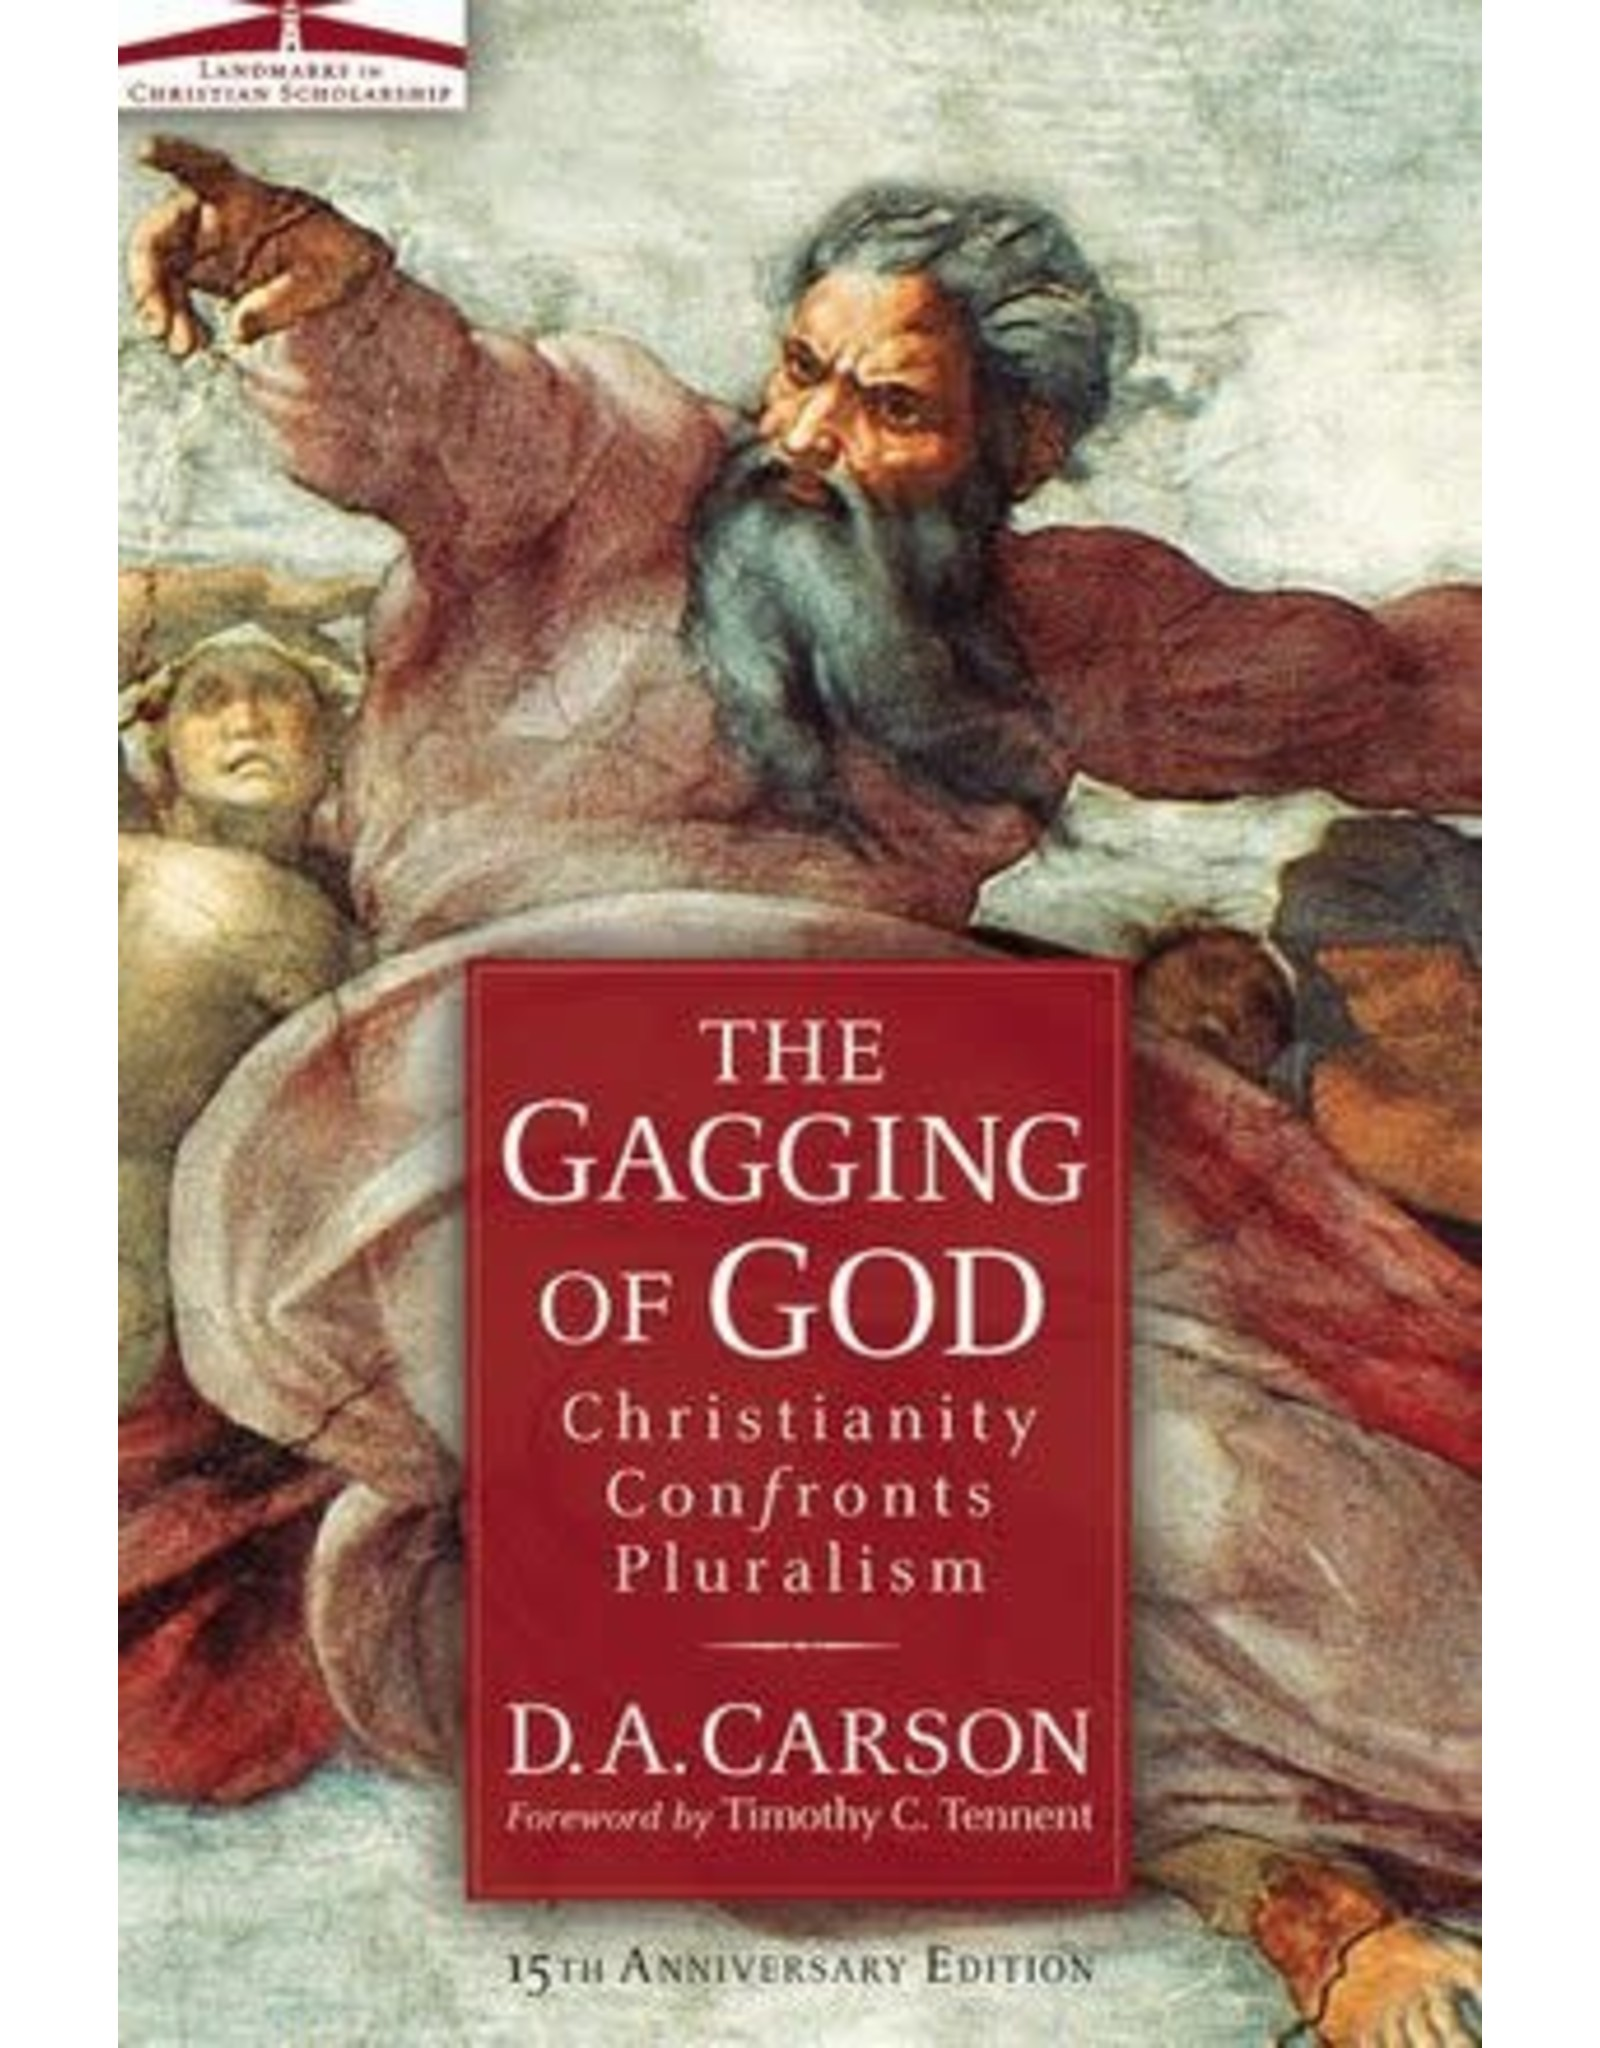 Carson The Gagging of God